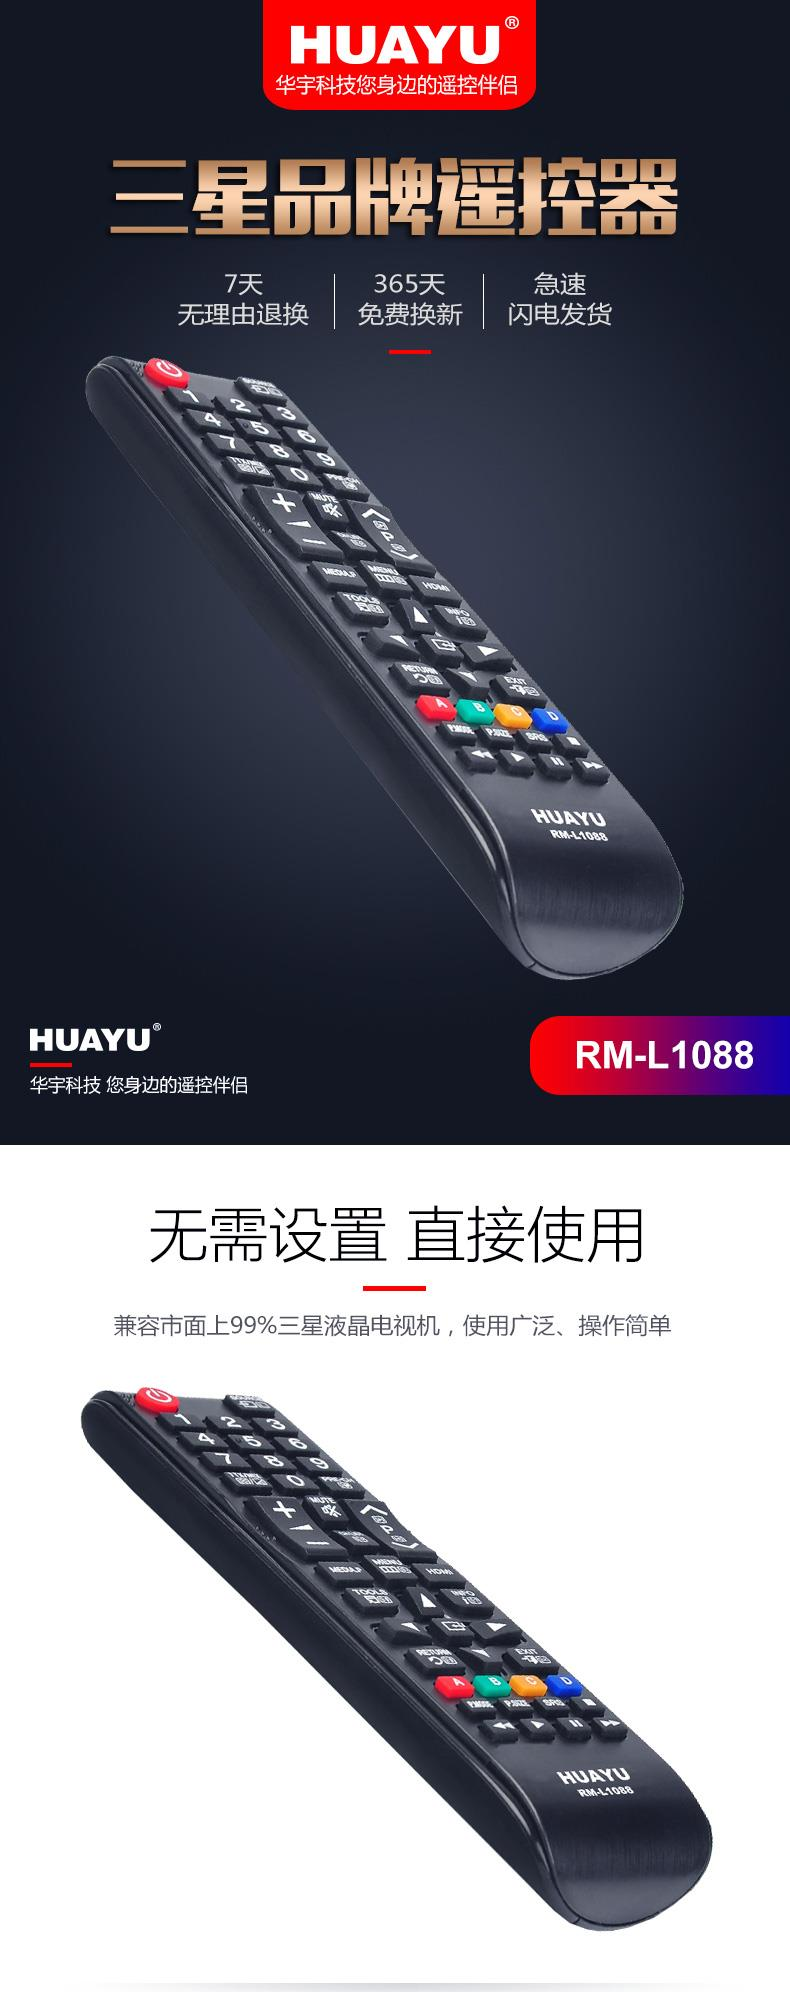 SAMSUNG LCD/LED REMOTE CONTROL (HUAYU COMPATIBLE)